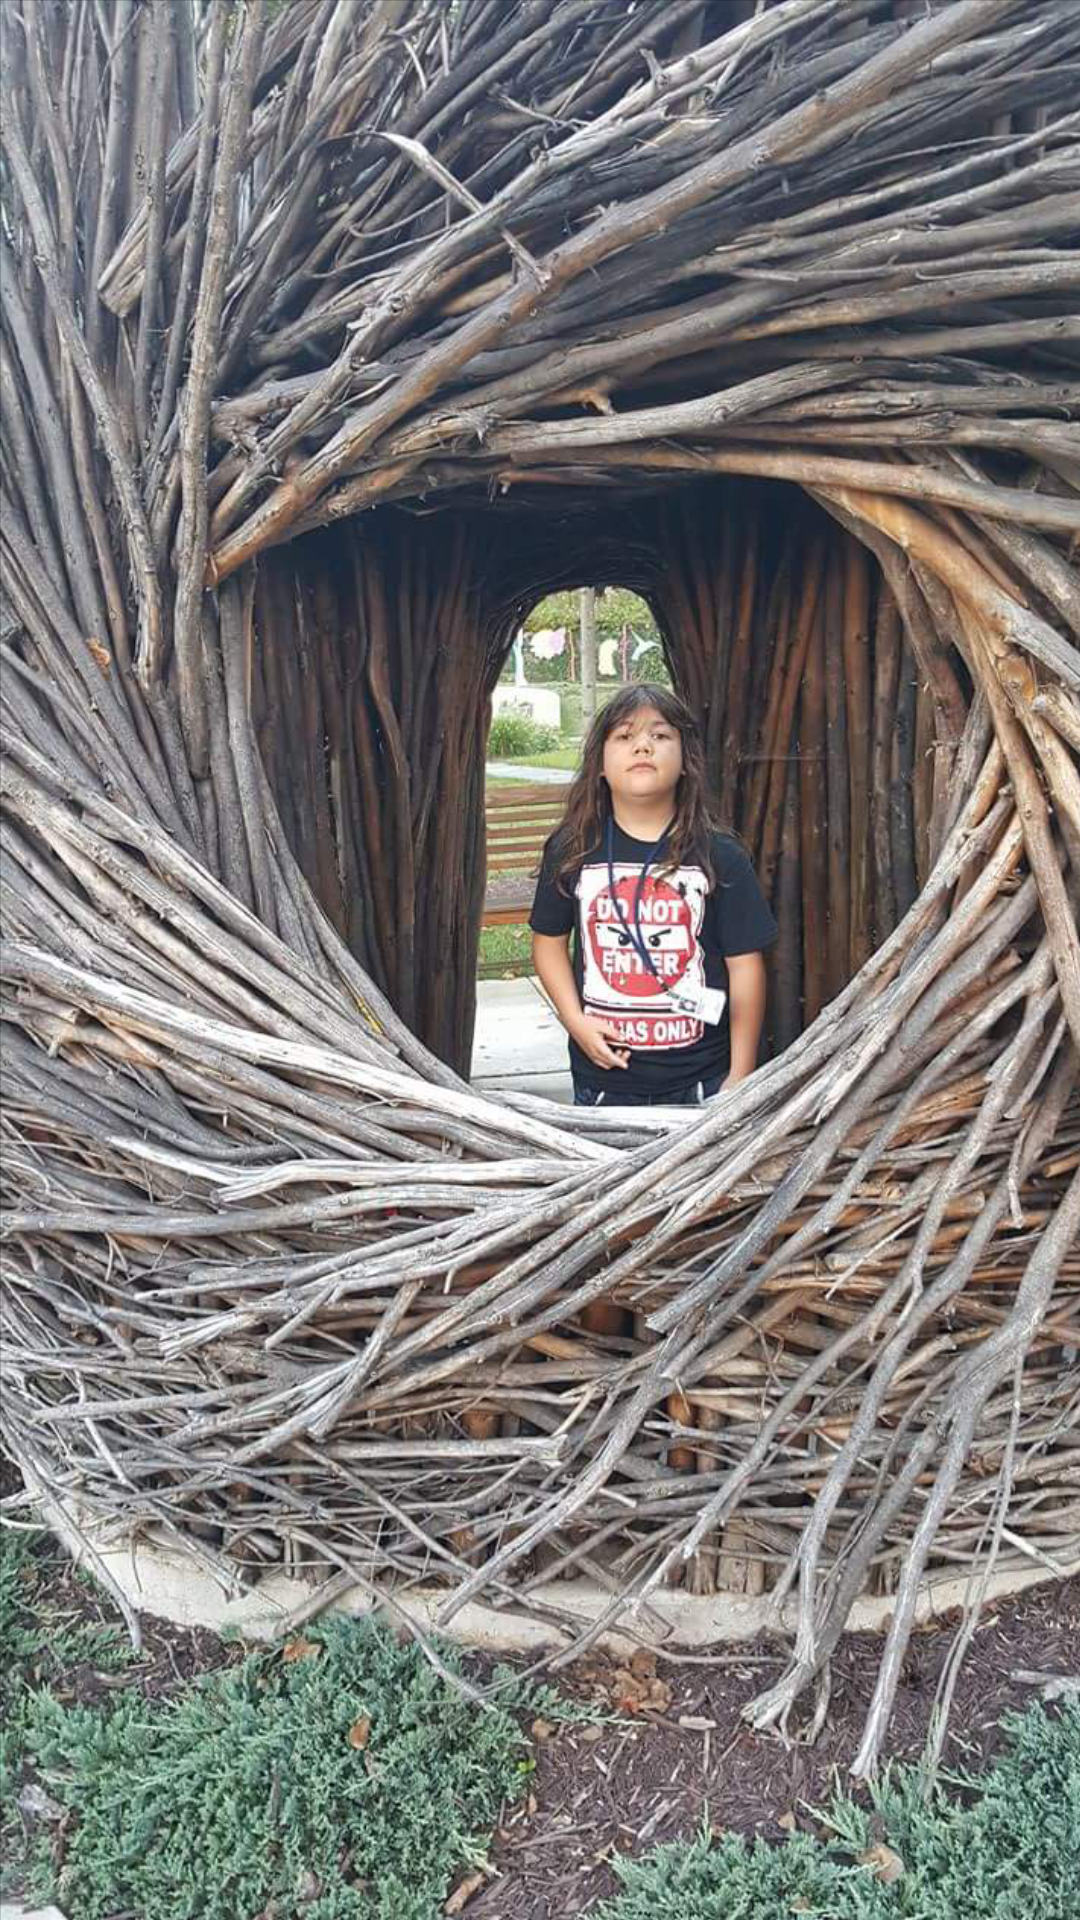 Nicky in a wooden art installation